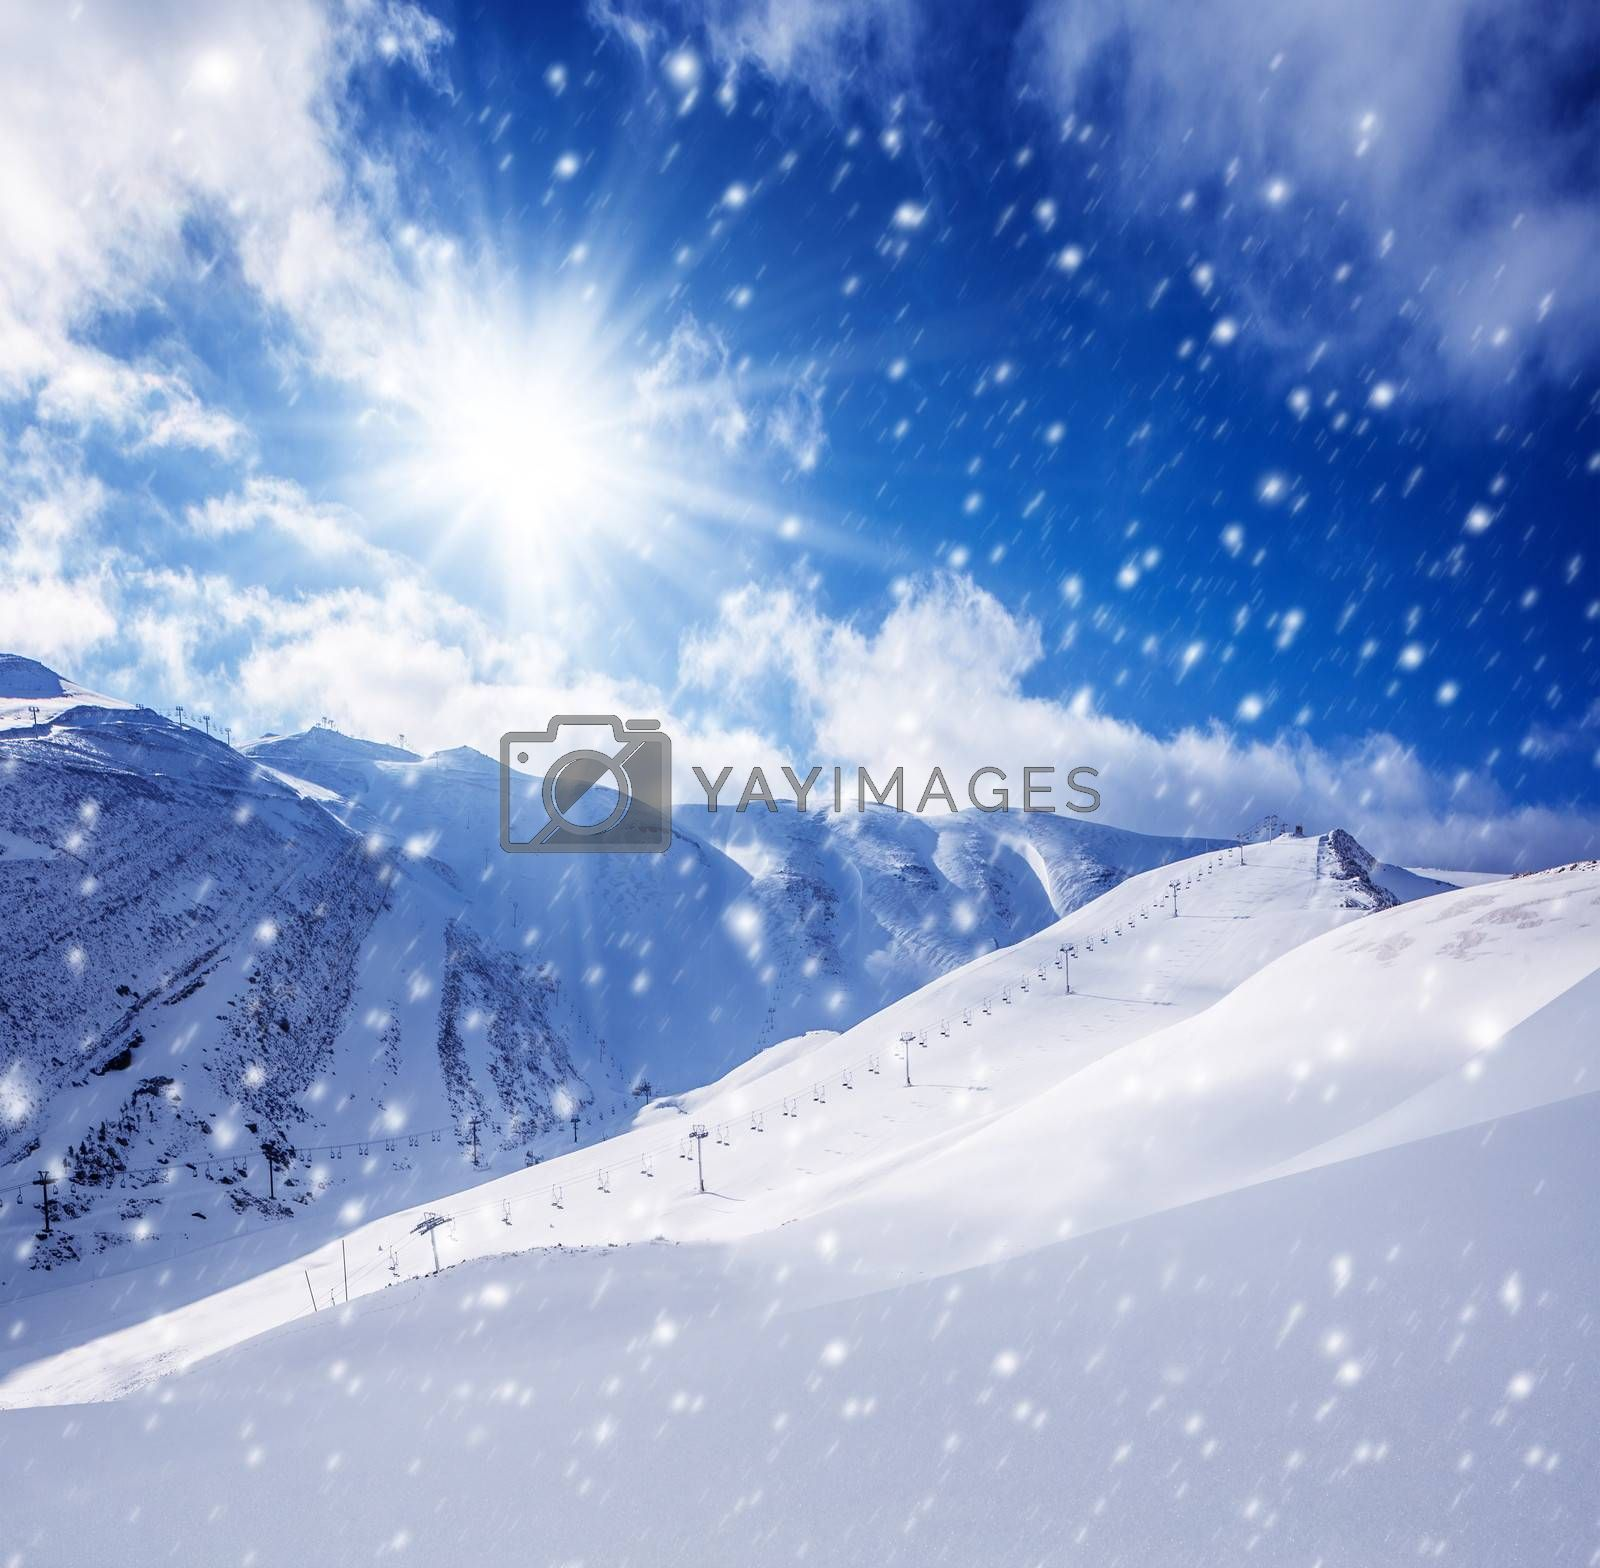 Beautiful winter landscape, high mountains covered with white snow, frosty sunny day, snowy weather, luxury ski resort